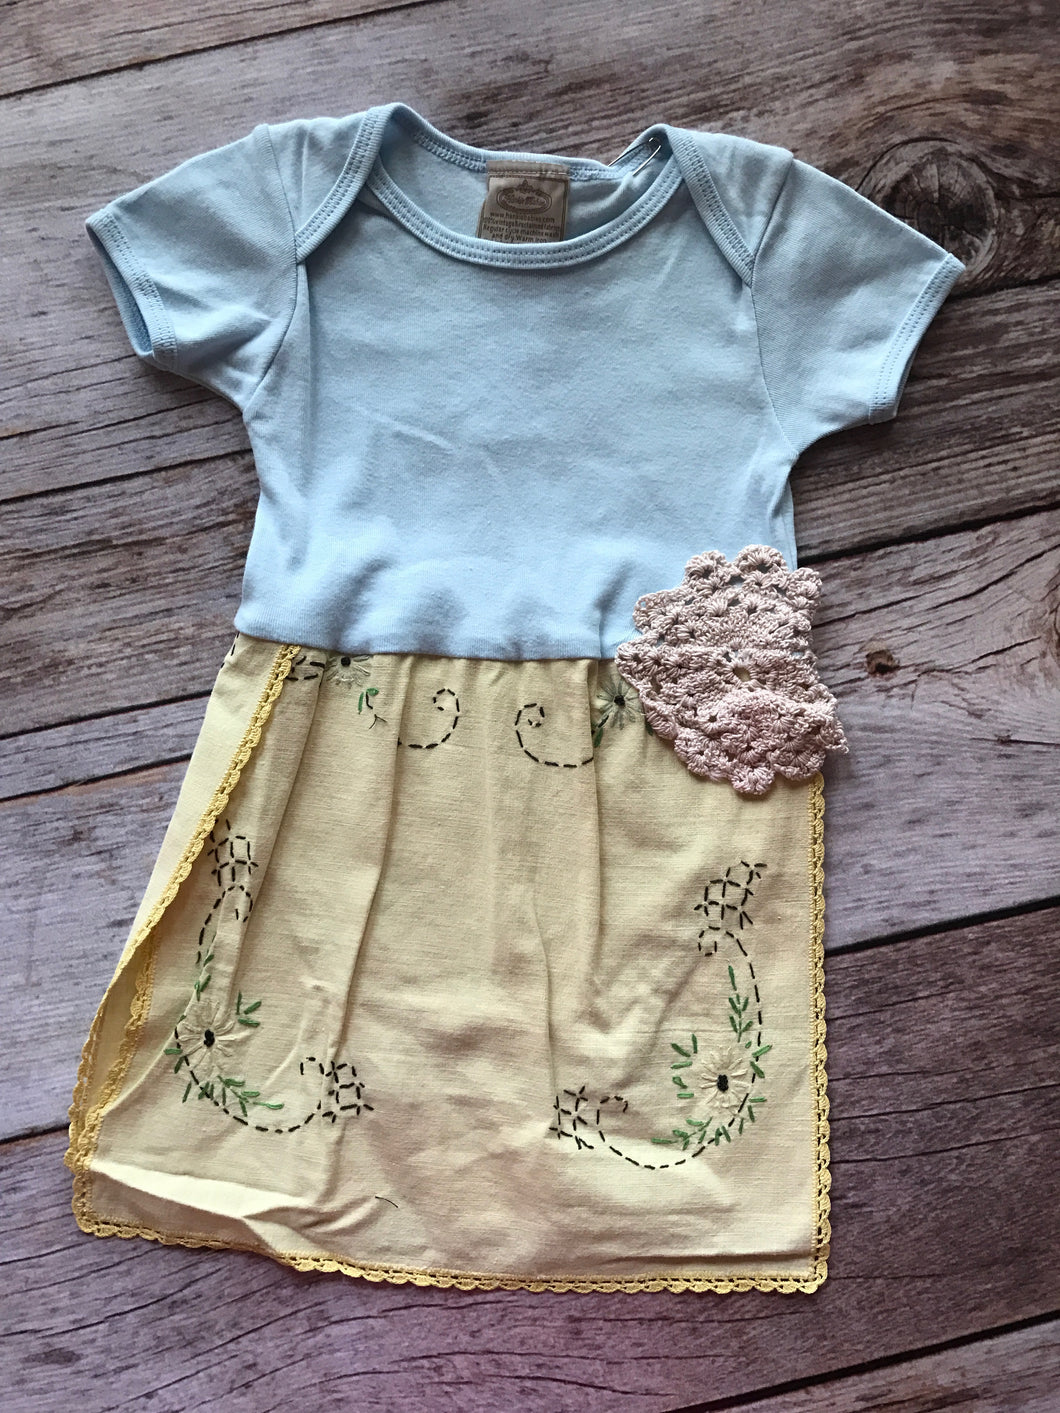 Hankie Baby- Yellow Onesie Dress